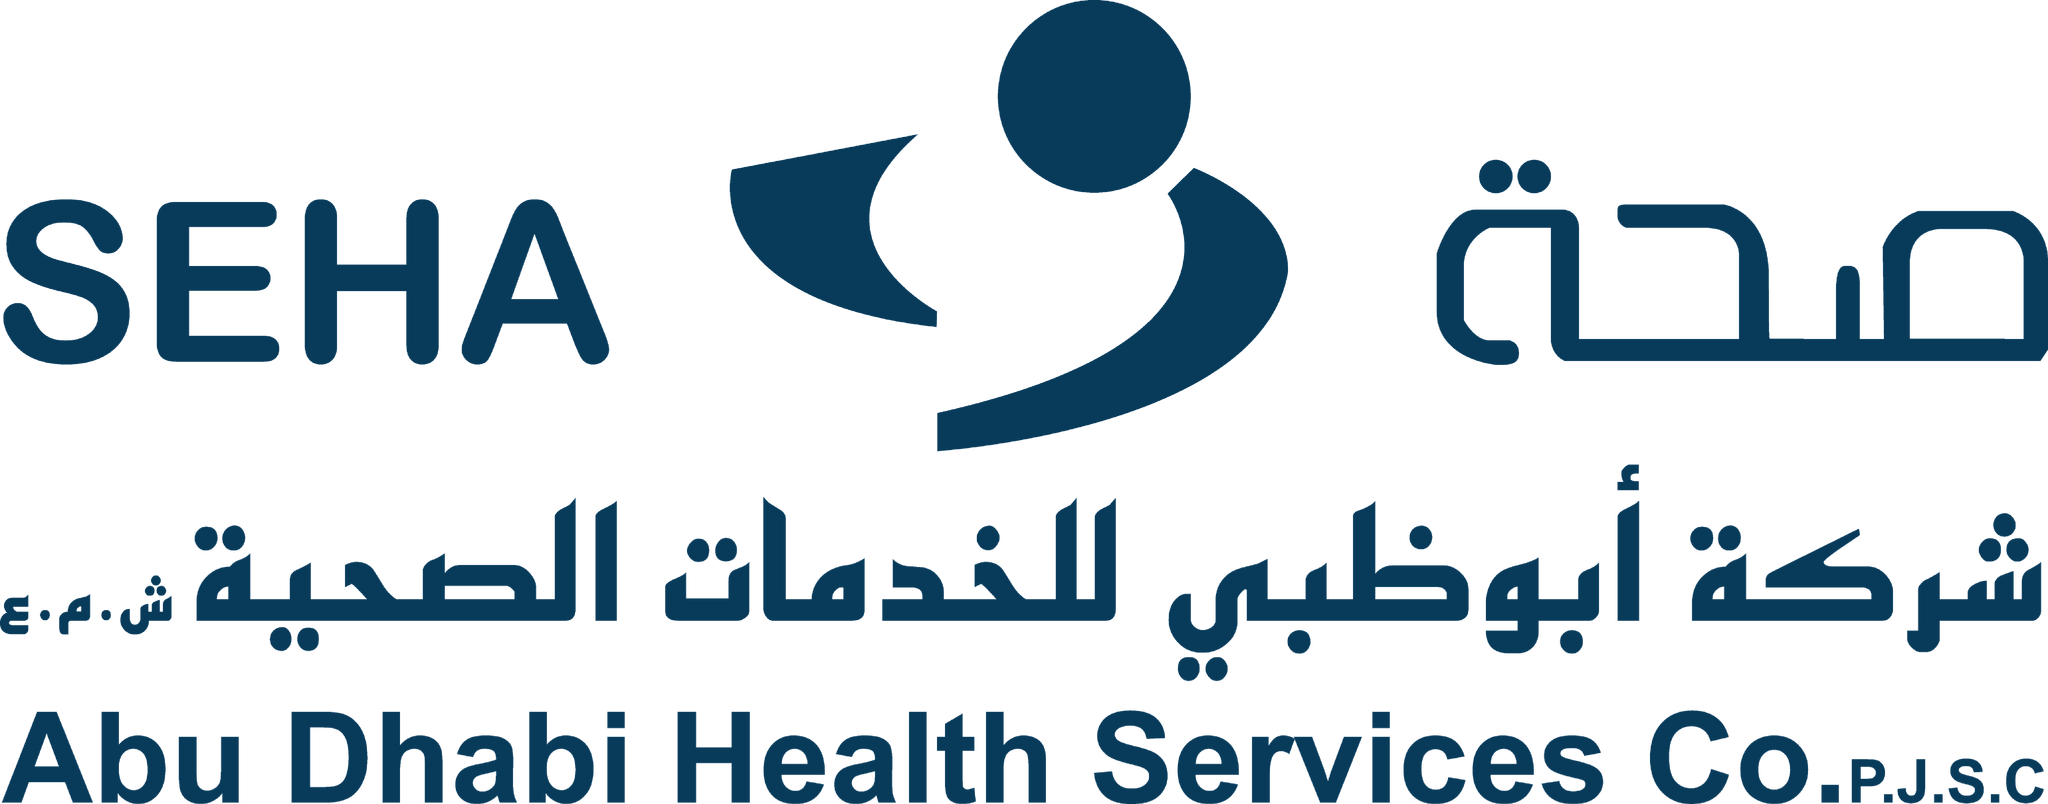 Abu Dhabi Health Services, Co. (SEHA)